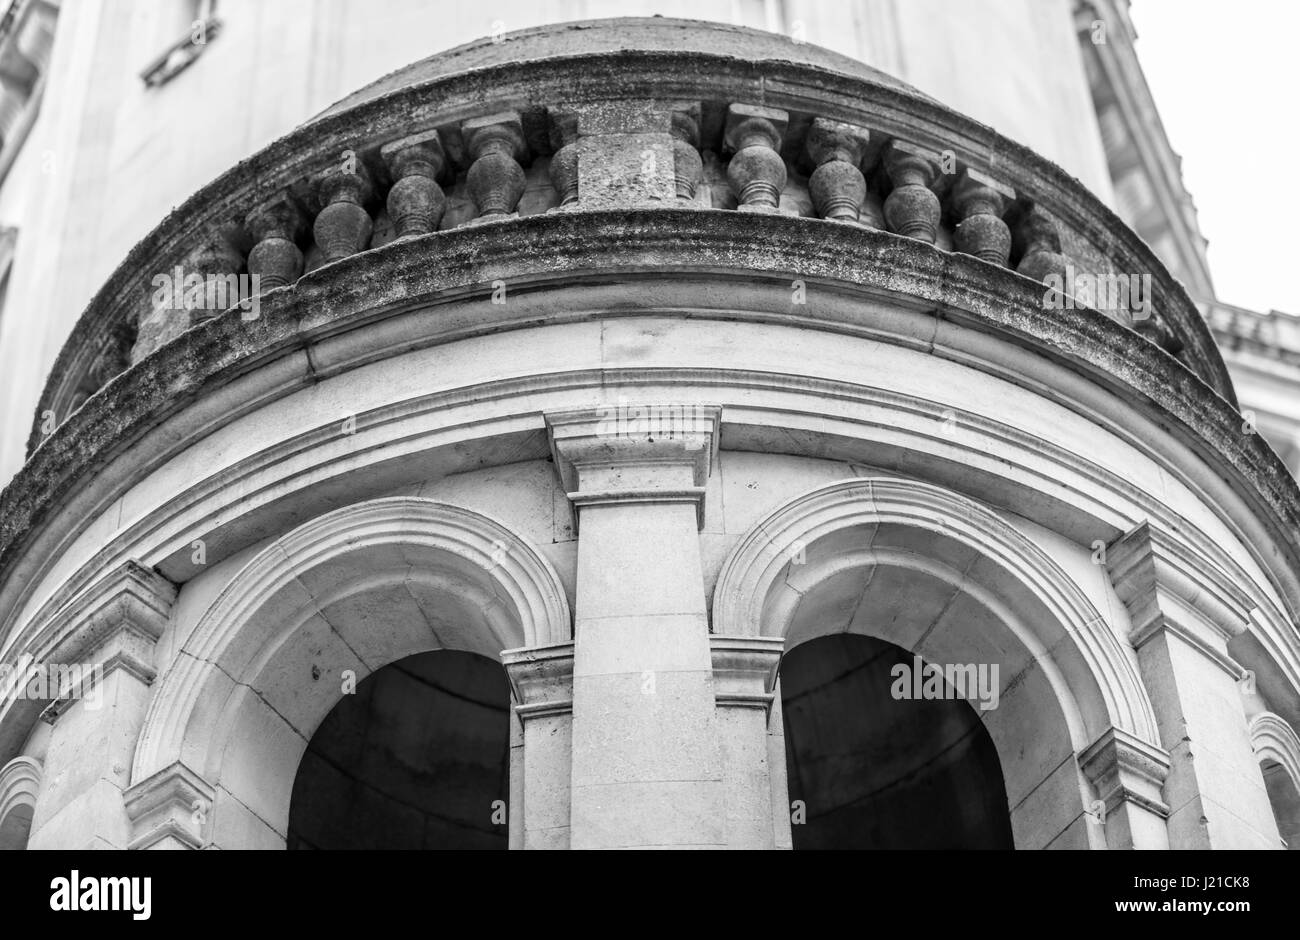 elaborate arches and balustrades in a detail shot of an old London building - Stock Image